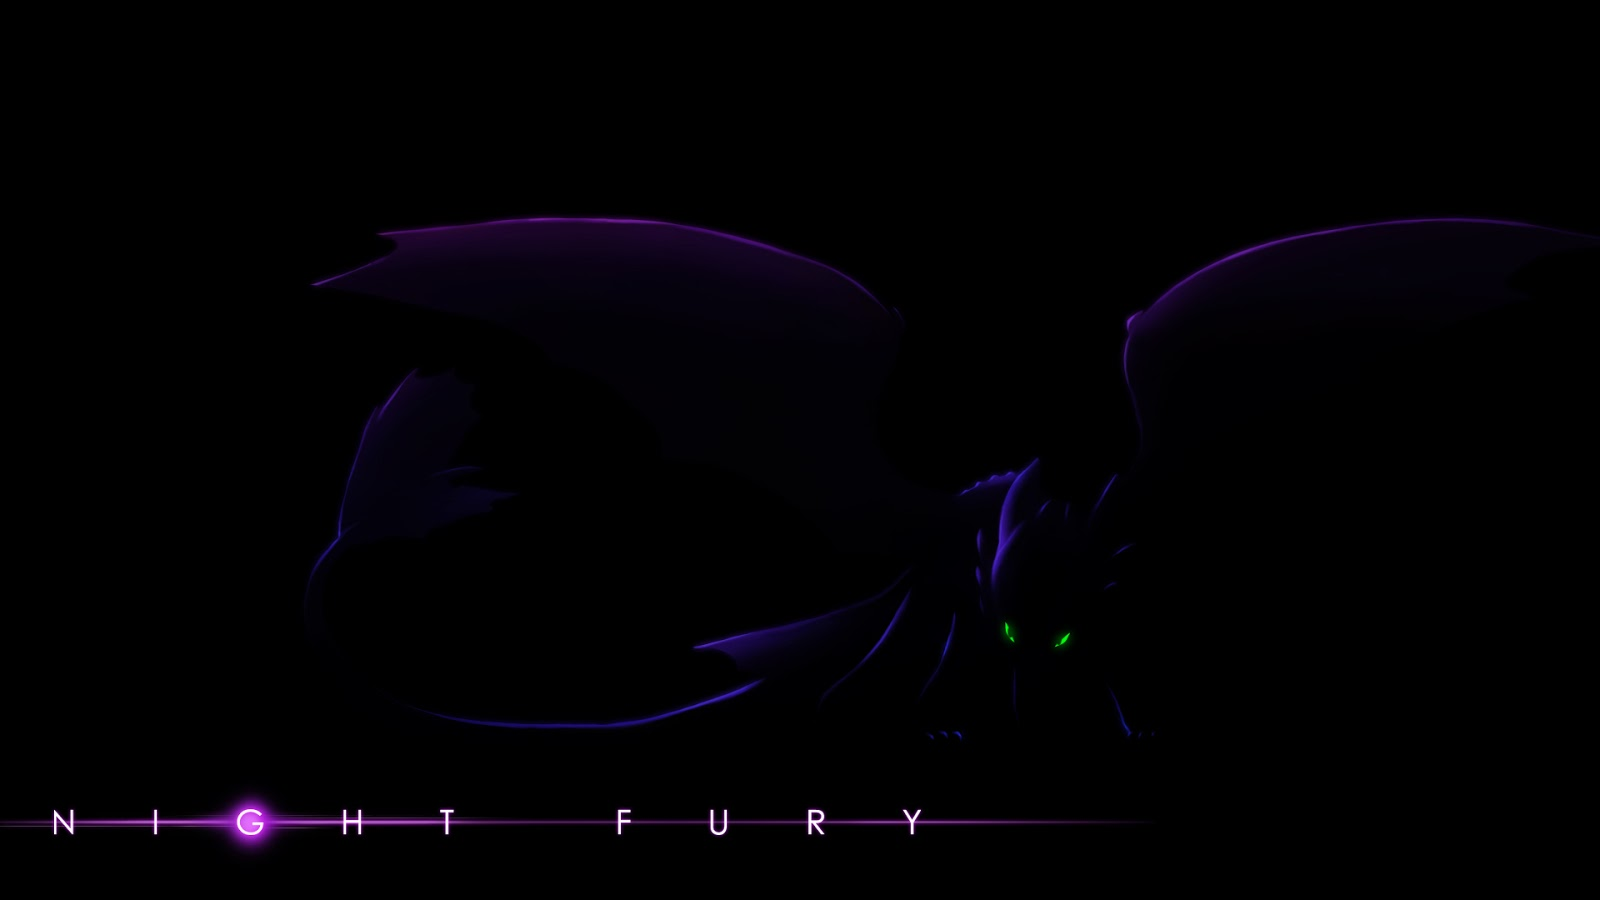 white night fury wallpaper - photo #17